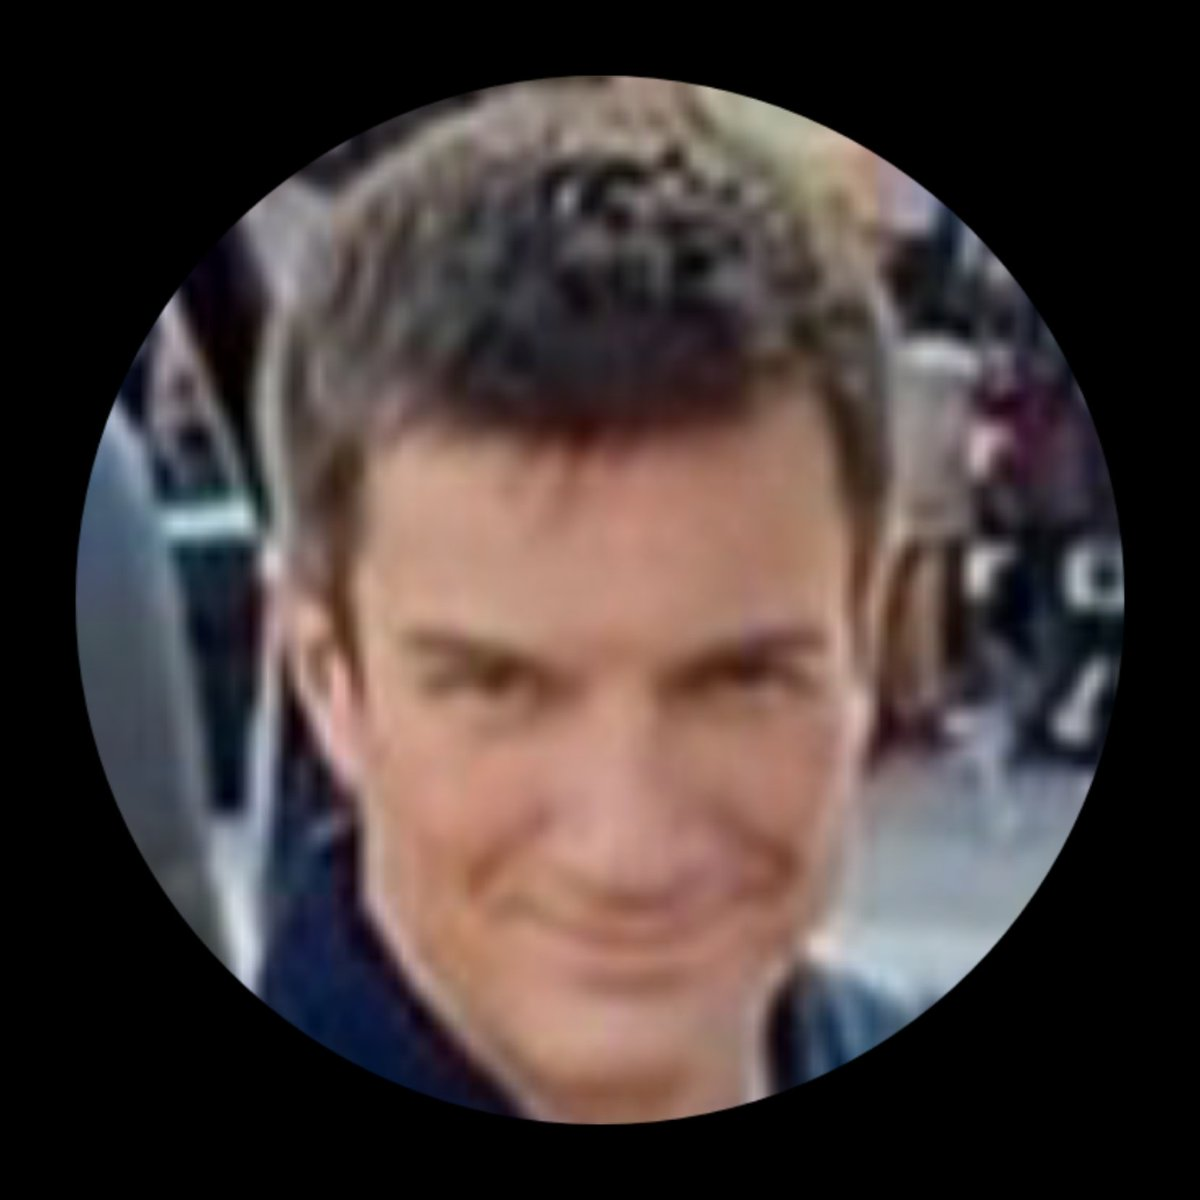 Nathan is  one of a kind ,talented and amazing man .He will always be my favorite Captain t.v crime fighter and actor. 😊#Team Fillion #O.N.F.D